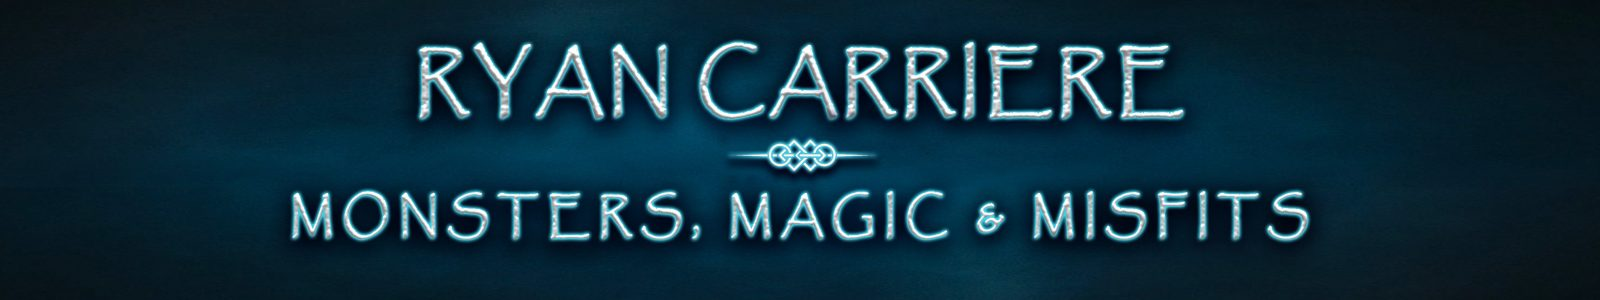 ryan carriere, MONSTERS, MAGIC, AND MISFITS, Ryan Carriere